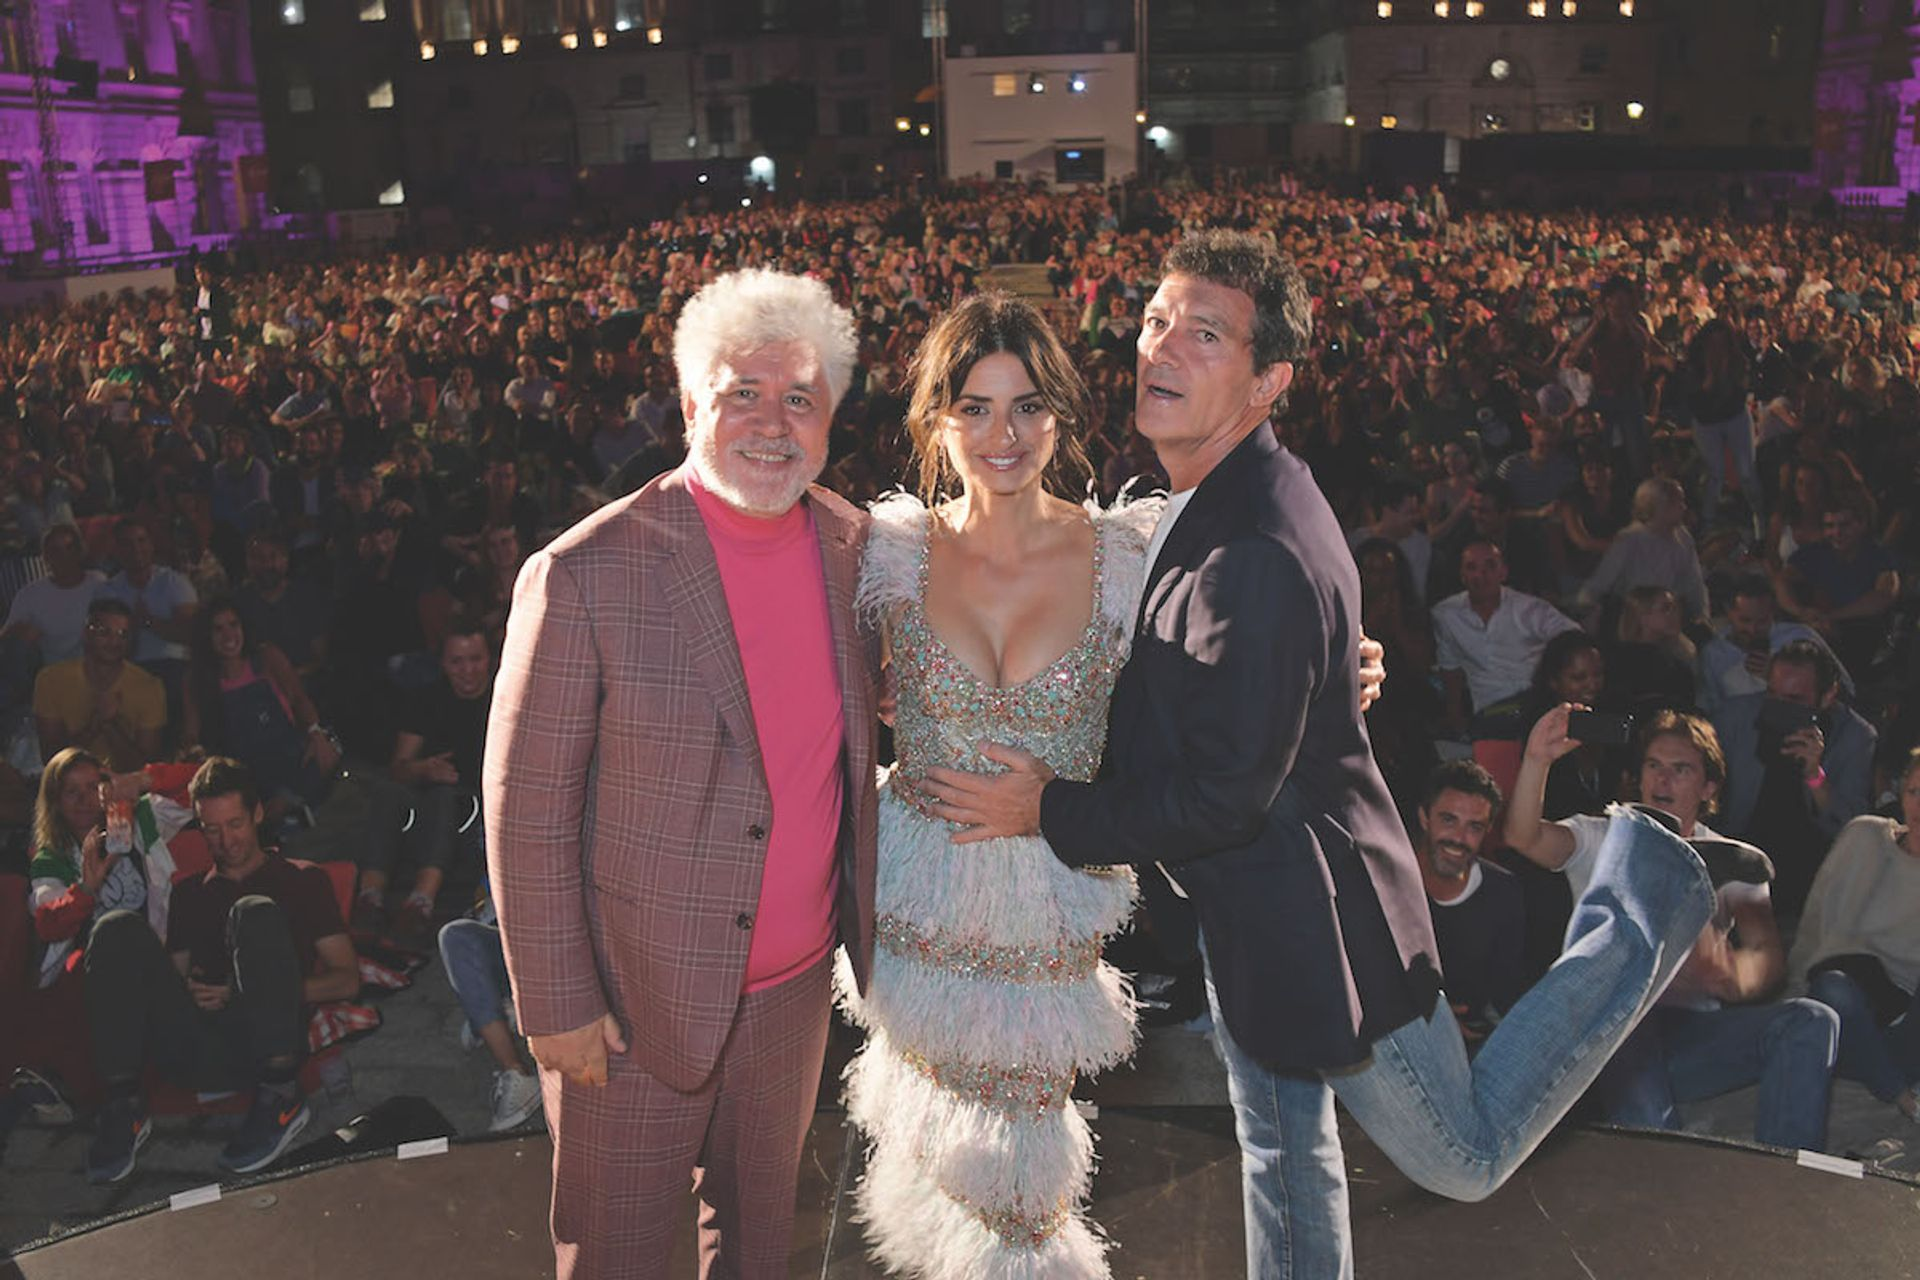 Pedro Almodóvar with Pain and Glory stars Penélope Cruz and Antonio Banderas at the open-air premiere Dave Benett